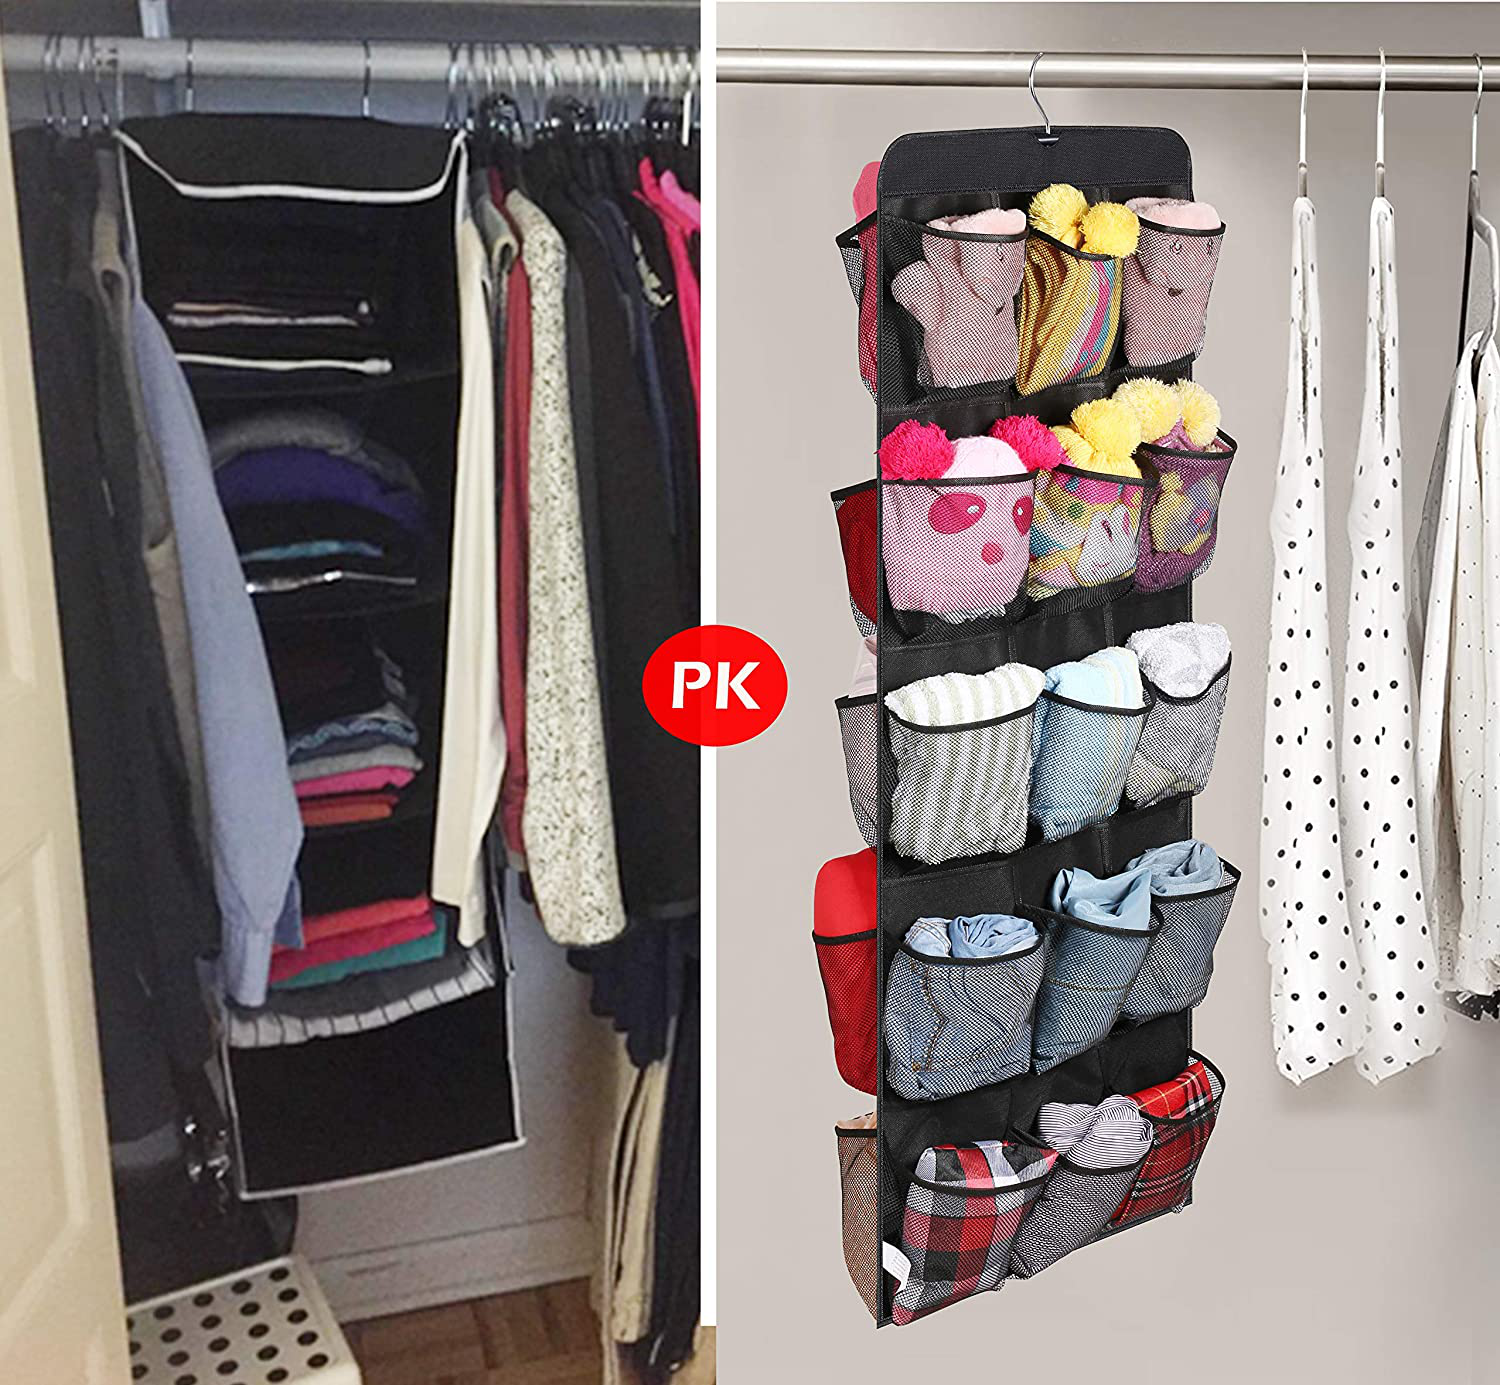 AOODA Hanging Shoe Rack for Closet Rod Double Sided 30 Large Pockets Hanging Shoe Organizer Holder With Rotating Hanger, Black